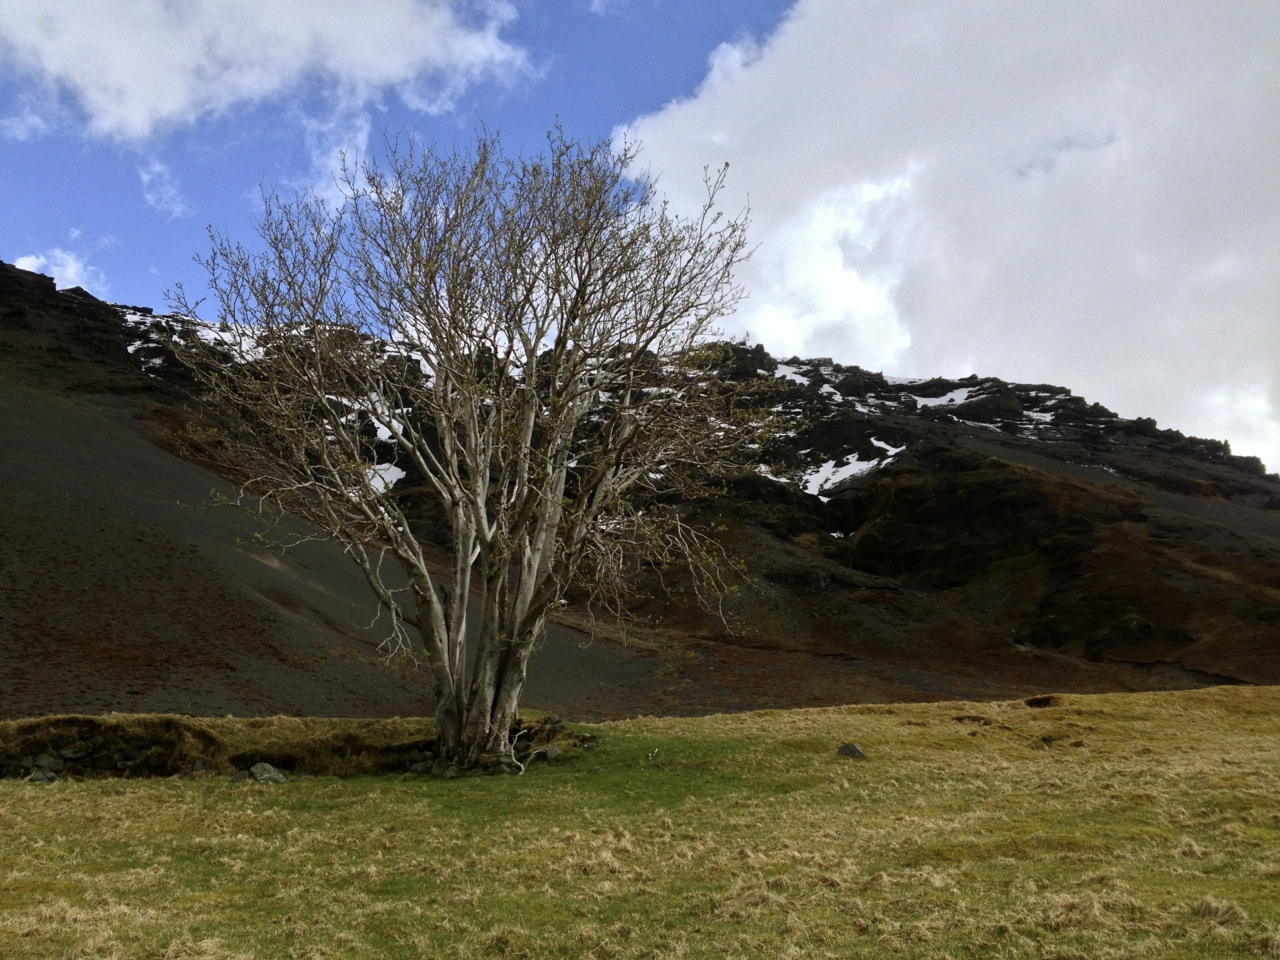 Iceland's Best Tree Of 2015 Award Announced